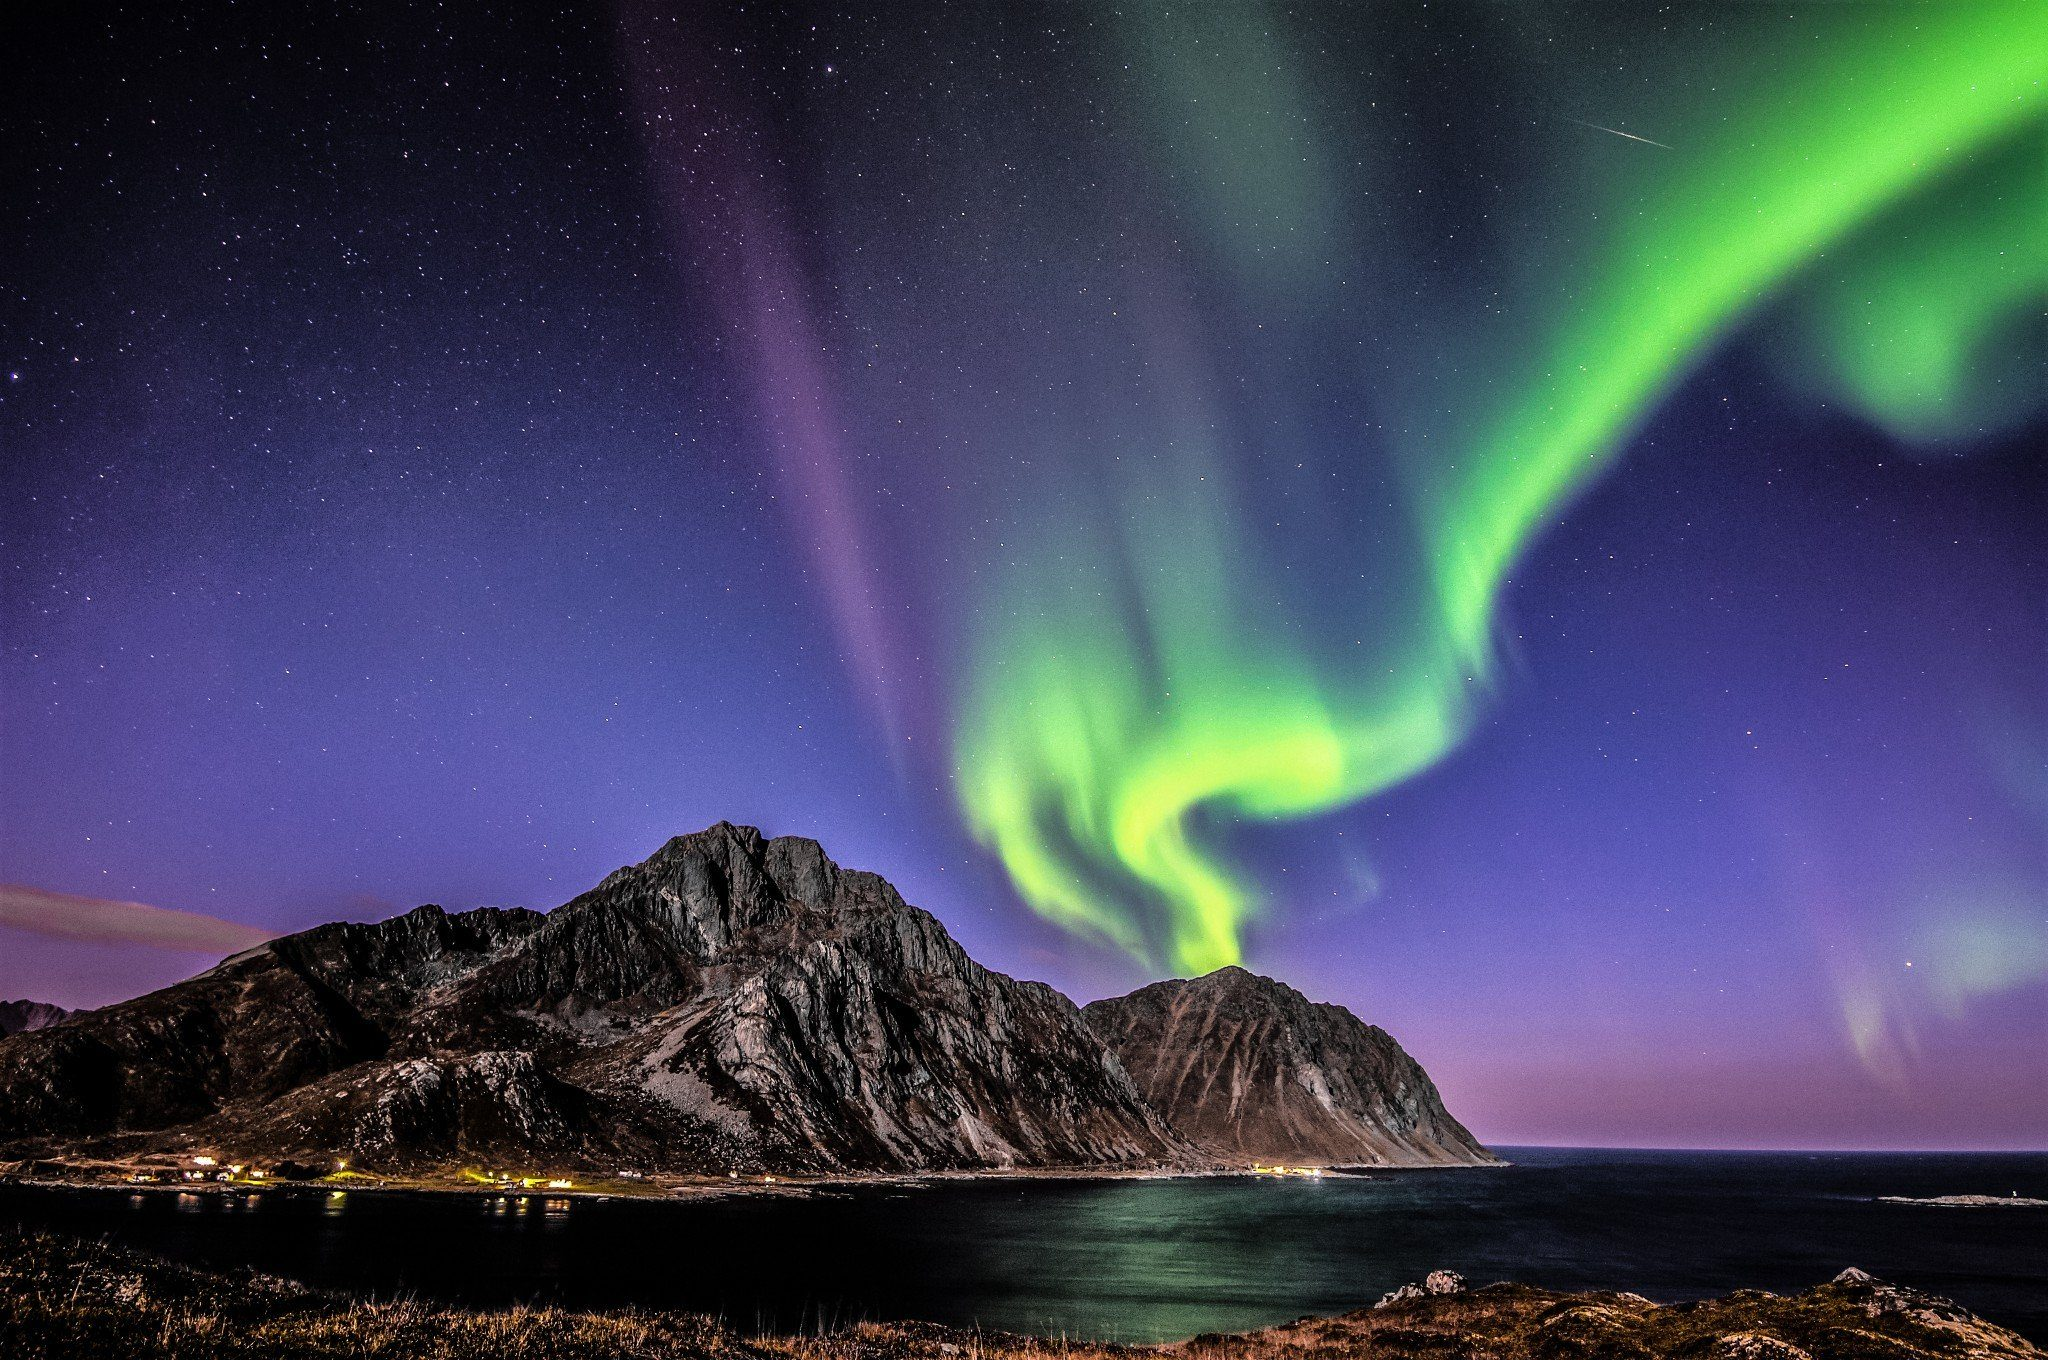 Nappstinden Norway Northern Lights The Northern Lights Could Be Visible Across The UK This Weekend